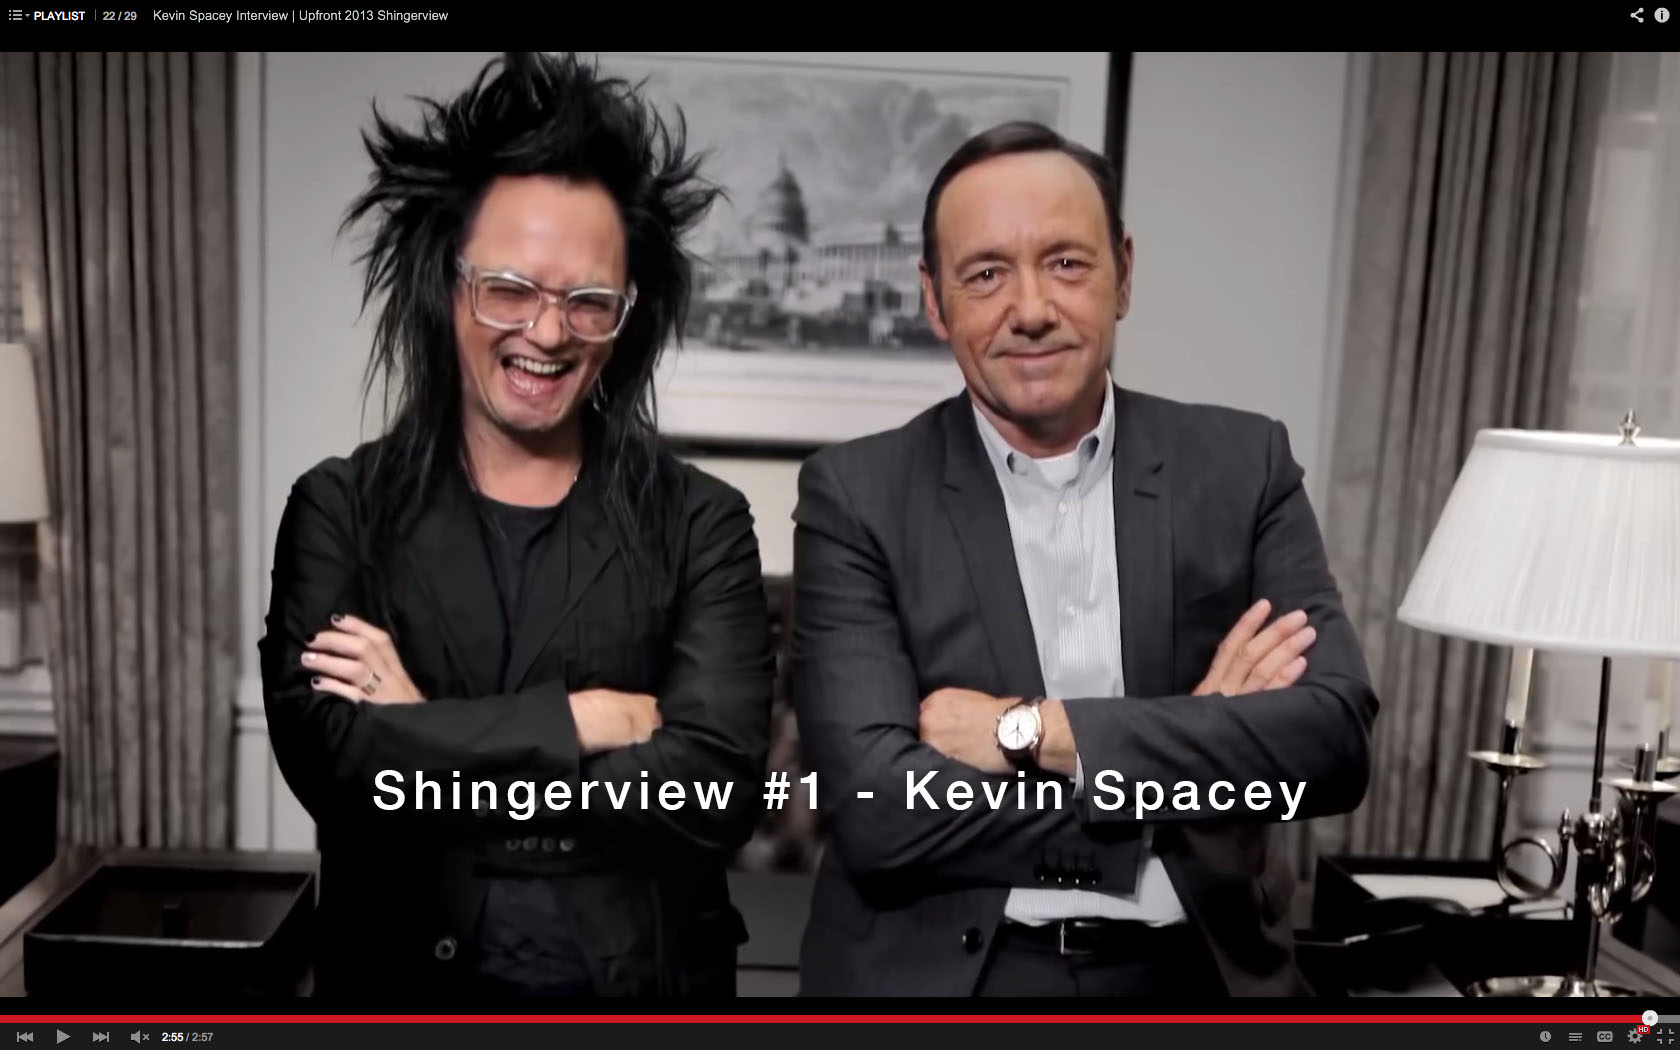 Shingerview #1 - Kevin Spacey still